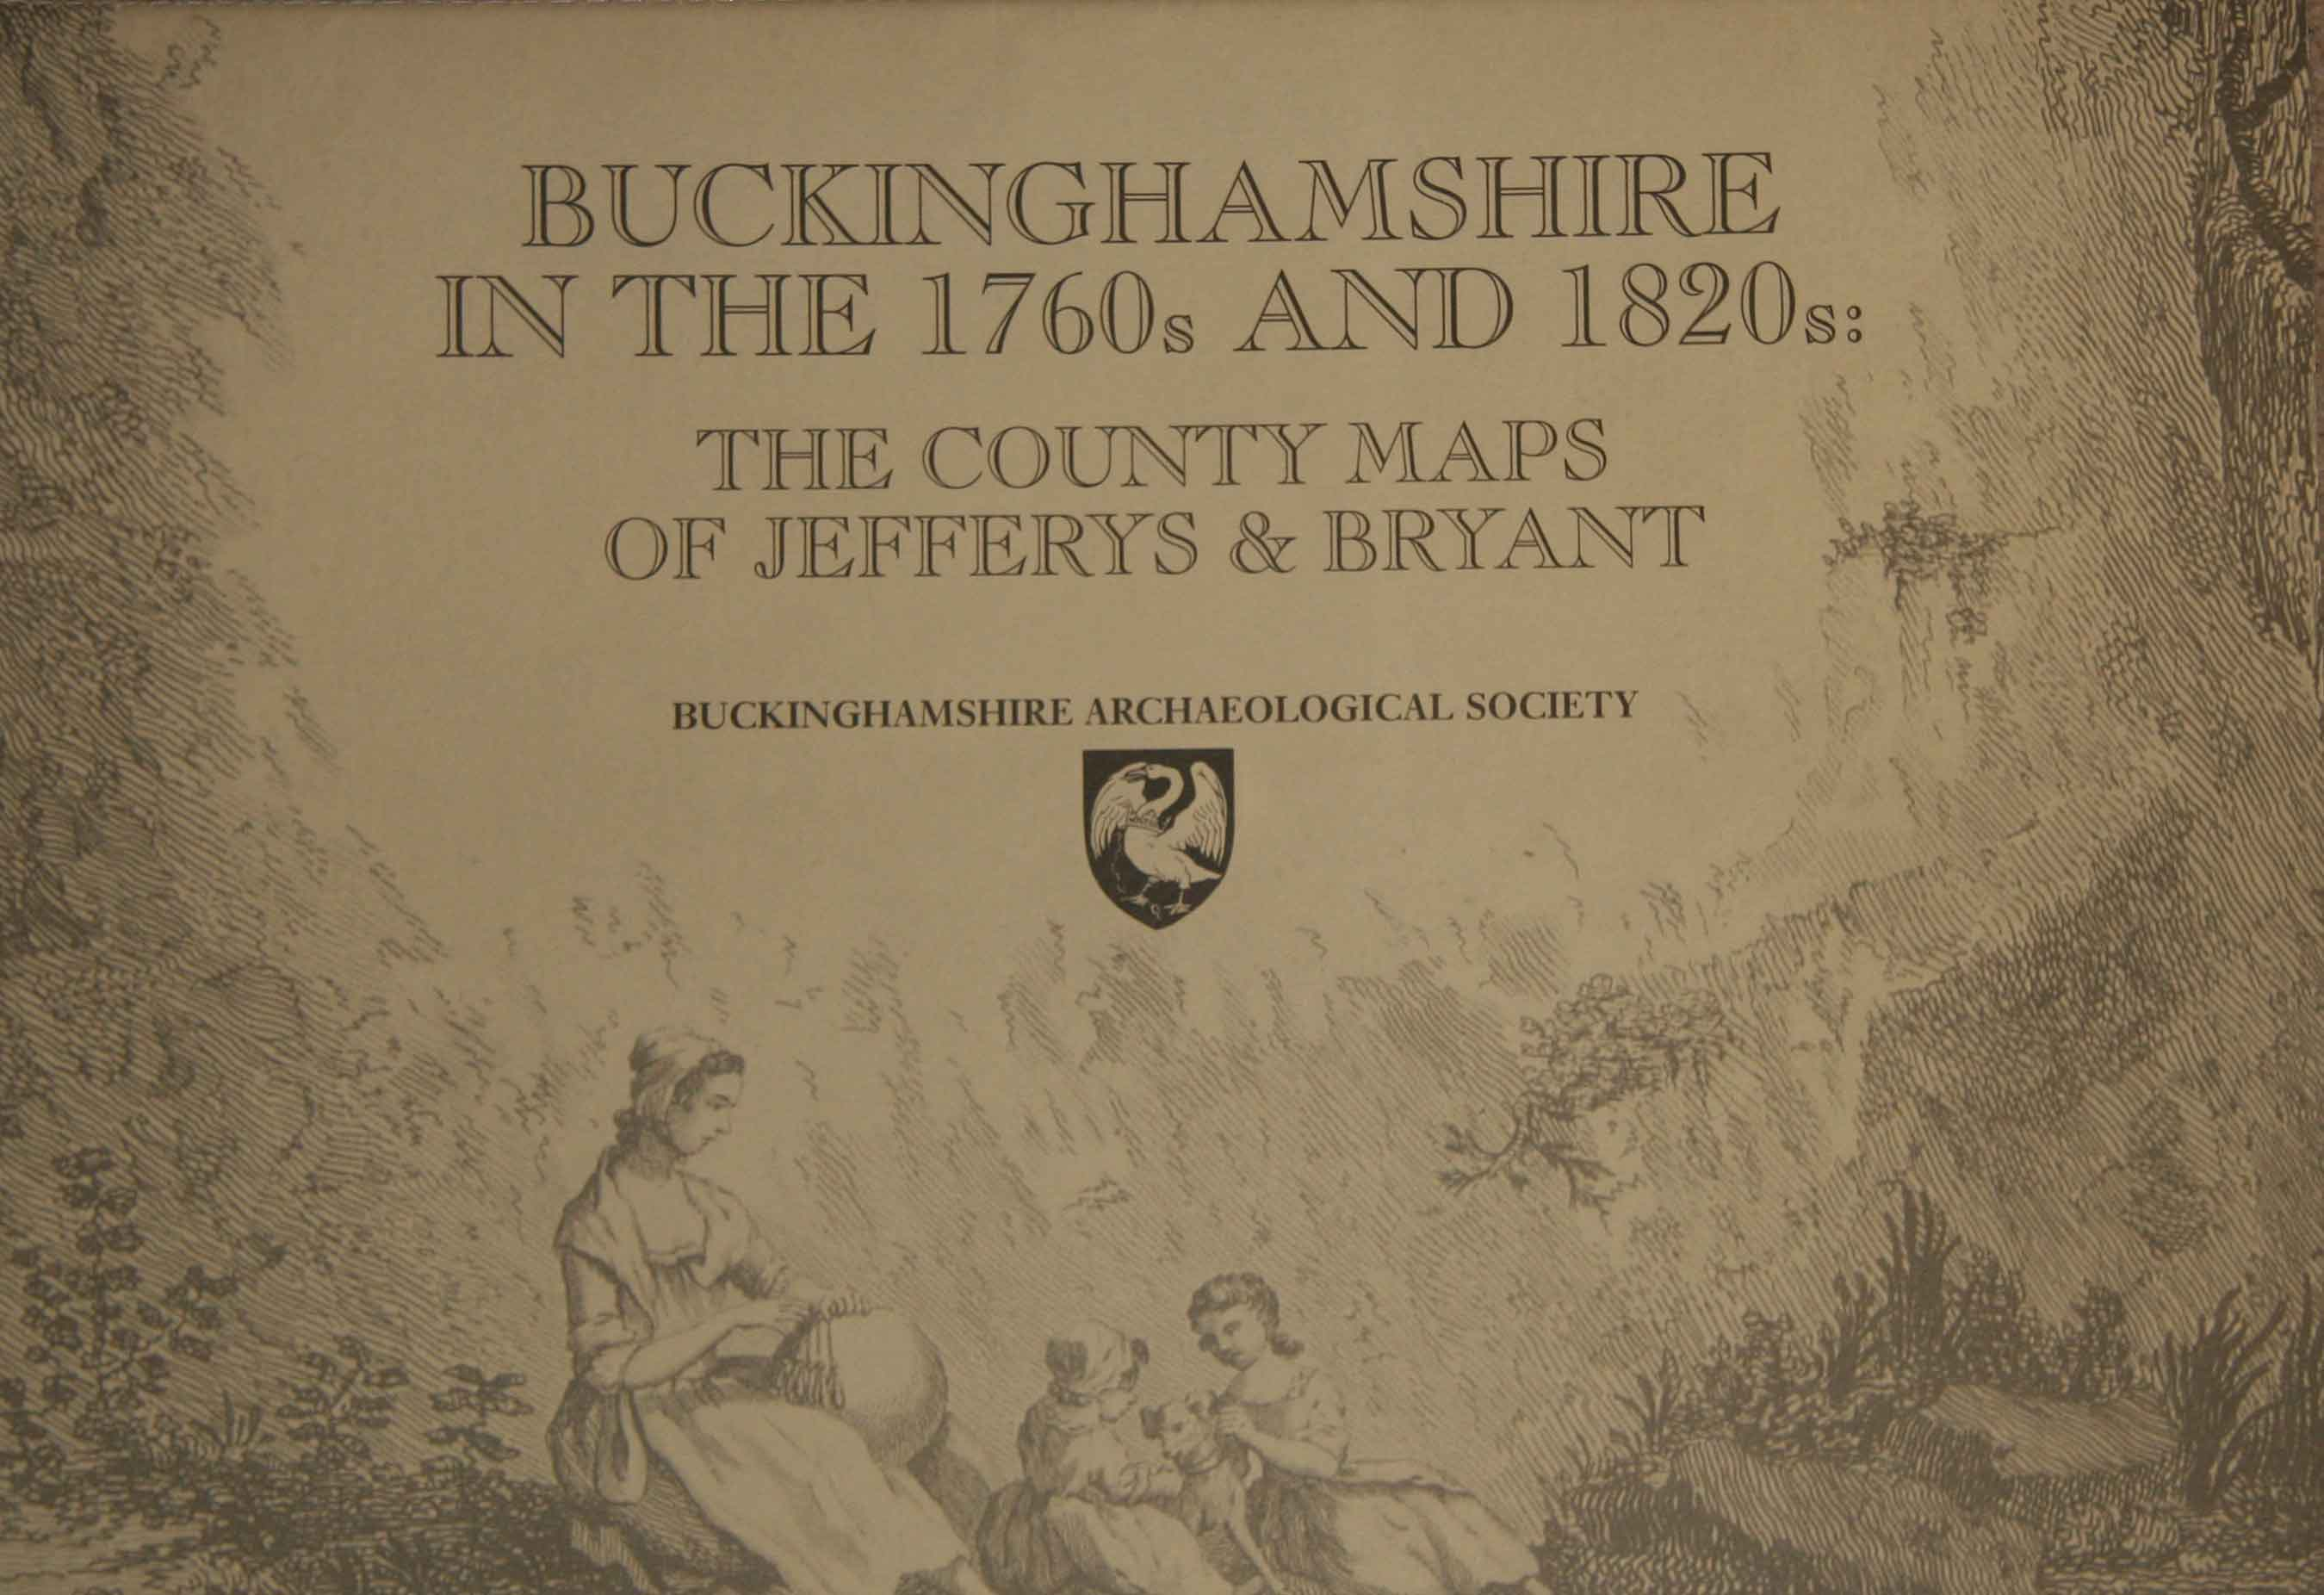 Jeffreys and Bryant maps cover